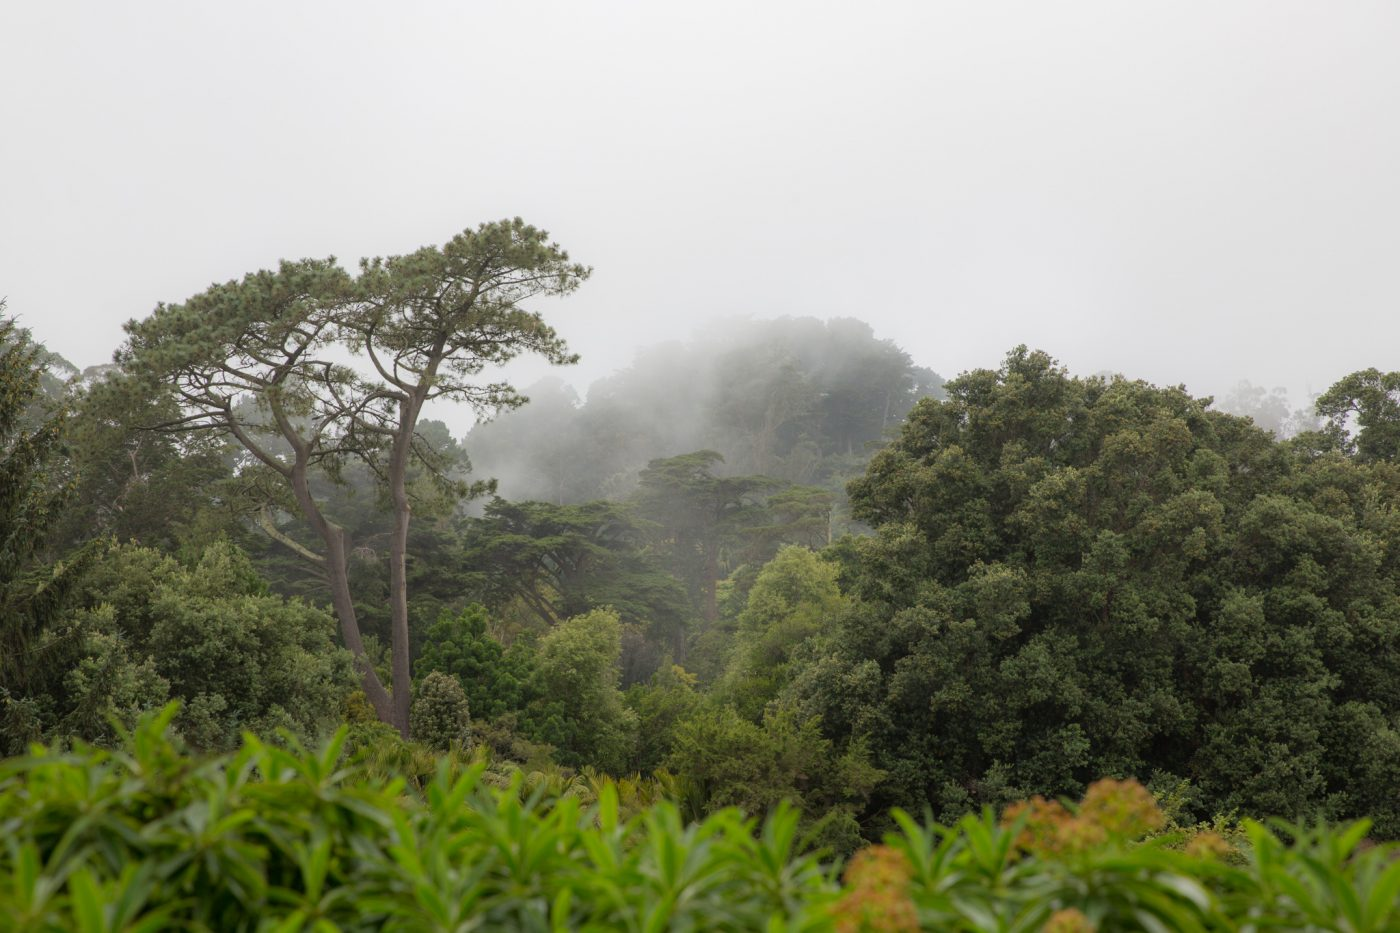 Photo: Not Gondwana: The fog comes rolling in